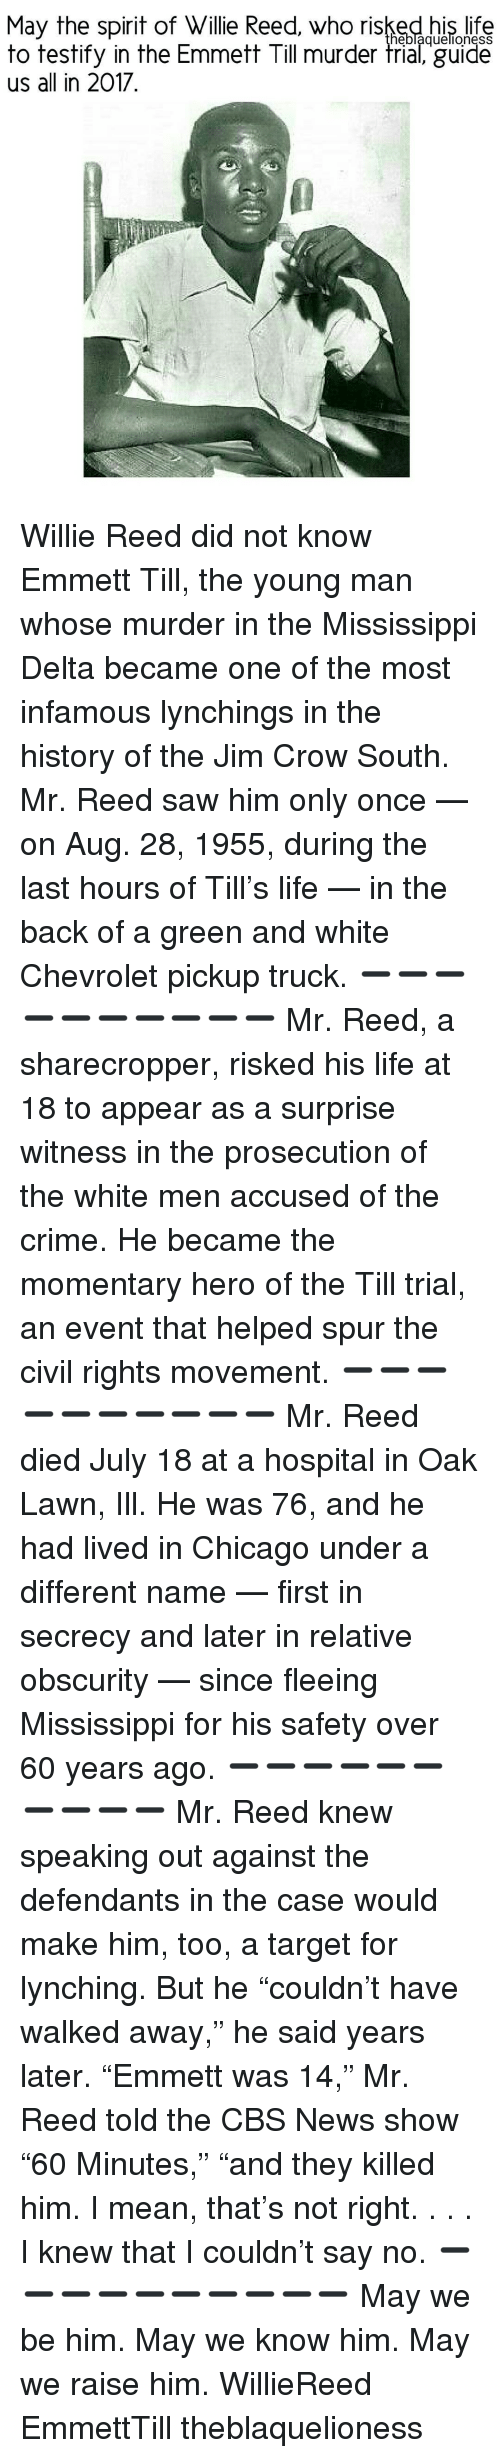 "Memes, Cbs, and Chevrolet: May the spirit of Willie Reed, who risked his life  heblaquellonesS  to testify in the Emmett Till murder trial, guide  us all in 2017 Willie Reed did not know Emmett Till, the young man whose murder in the Mississippi Delta became one of the most infamous lynchings in the history of the Jim Crow South. Mr. Reed saw him only once — on Aug. 28, 1955, during the last hours of Till's life — in the back of a green and white Chevrolet pickup truck. ➖➖➖➖➖➖➖➖➖➖ Mr. Reed, a sharecropper, risked his life at 18 to appear as a surprise witness in the prosecution of the white men accused of the crime. He became the momentary hero of the Till trial, an event that helped spur the civil rights movement. ➖➖➖➖➖➖➖➖➖➖ Mr. Reed died July 18 at a hospital in Oak Lawn, Ill. He was 76, and he had lived in Chicago under a different name — first in secrecy and later in relative obscurity — since fleeing Mississippi for his safety over 60 years ago. ➖➖➖➖➖➖➖➖➖➖ Mr. Reed knew speaking out against the defendants in the case would make him, too, a target for lynching. But he ""couldn't have walked away,"" he said years later. ""Emmett was 14,"" Mr. Reed told the CBS News show ""60 Minutes,"" ""and they killed him. I mean, that's not right. . . . I knew that I couldn't say no. ➖➖➖➖➖➖➖➖➖➖ May we be him. May we know him. May we raise him. WillieReed EmmettTill theblaquelioness"